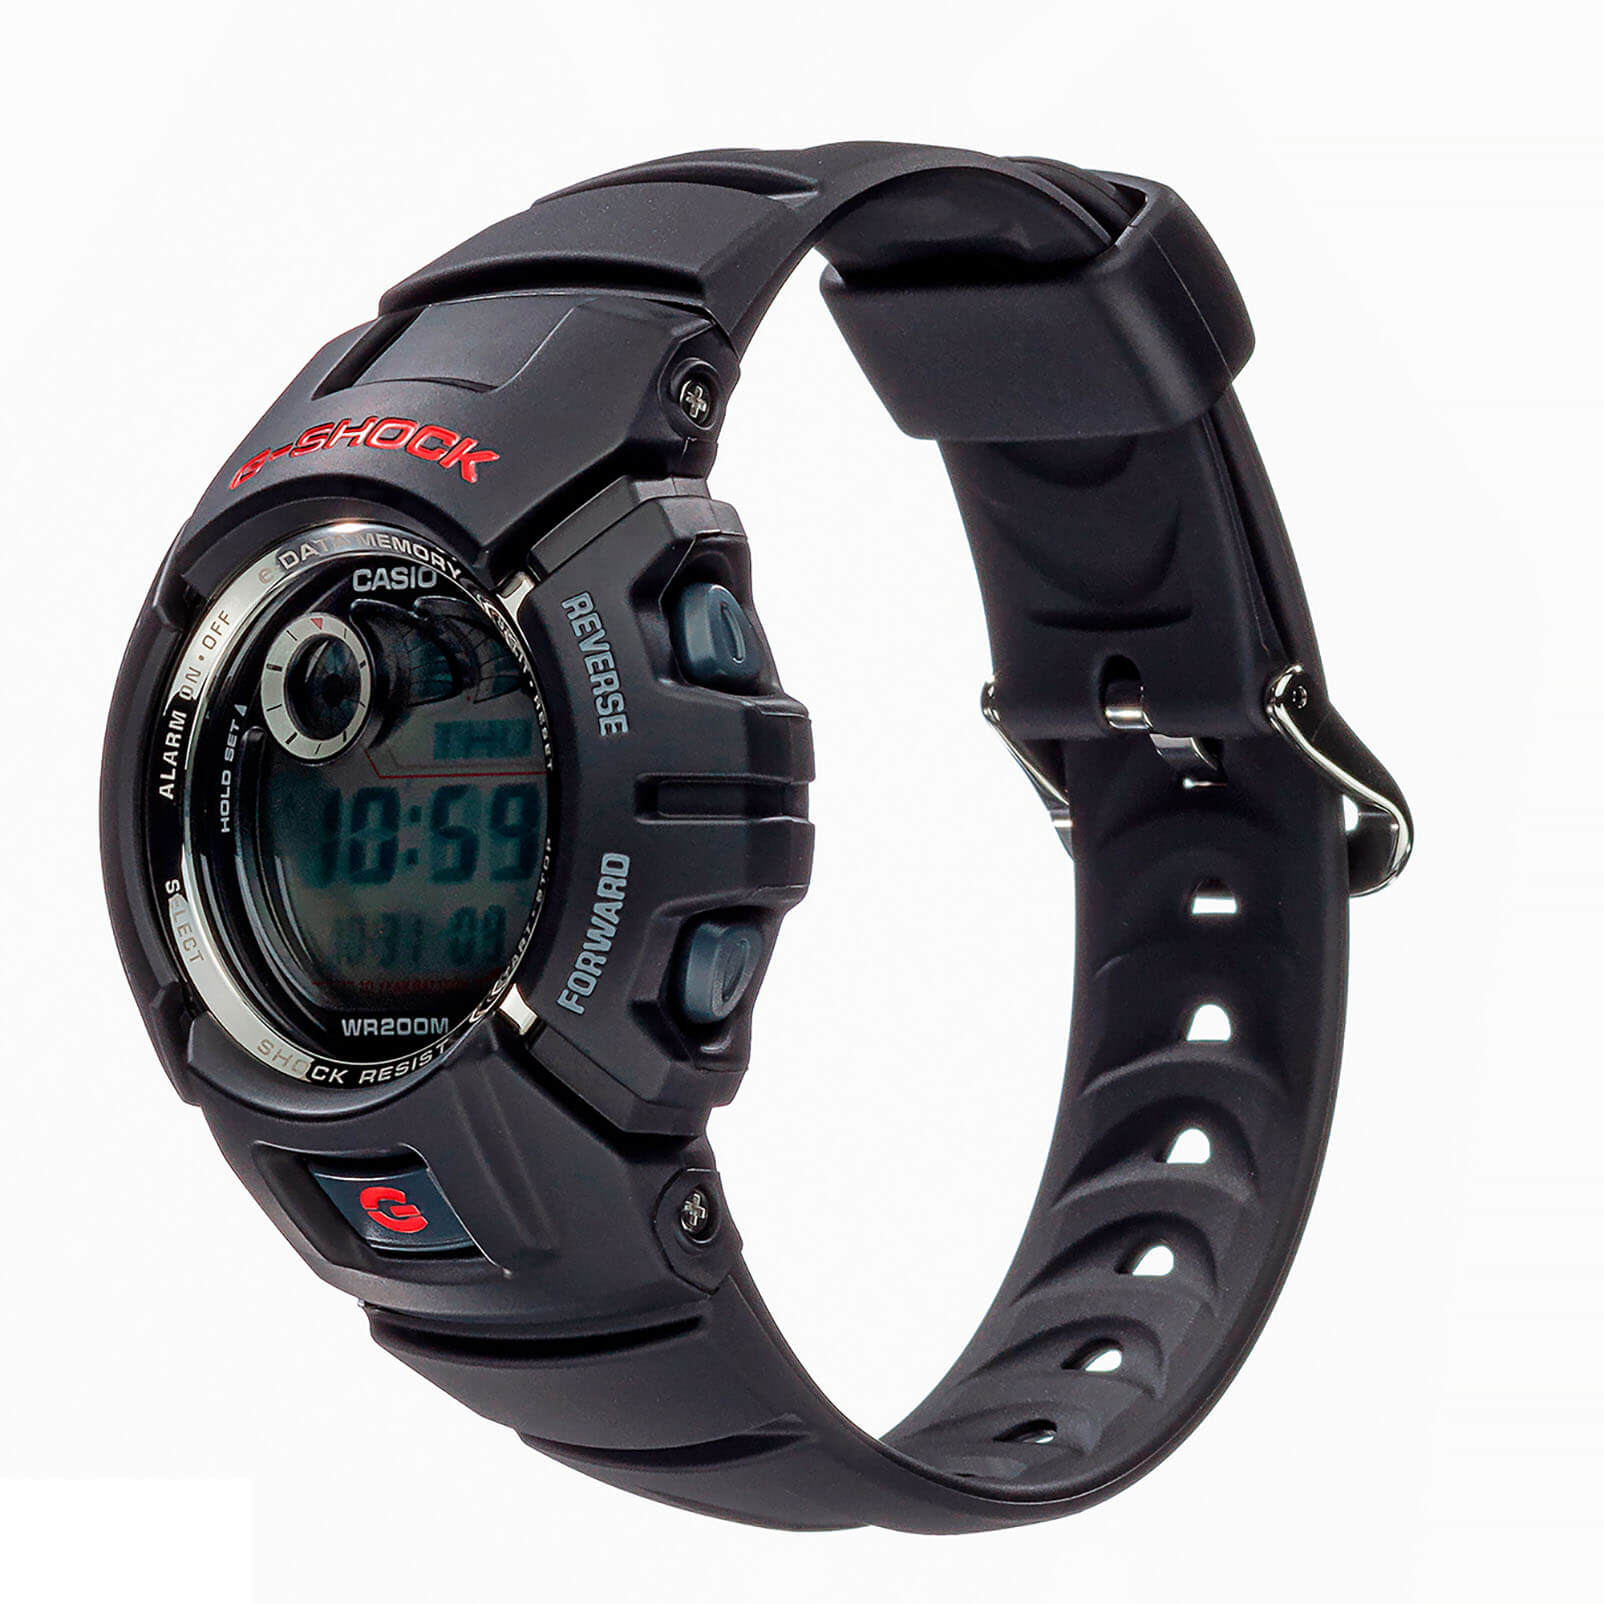 Часы Casio G-Shock G-2900F-1VER